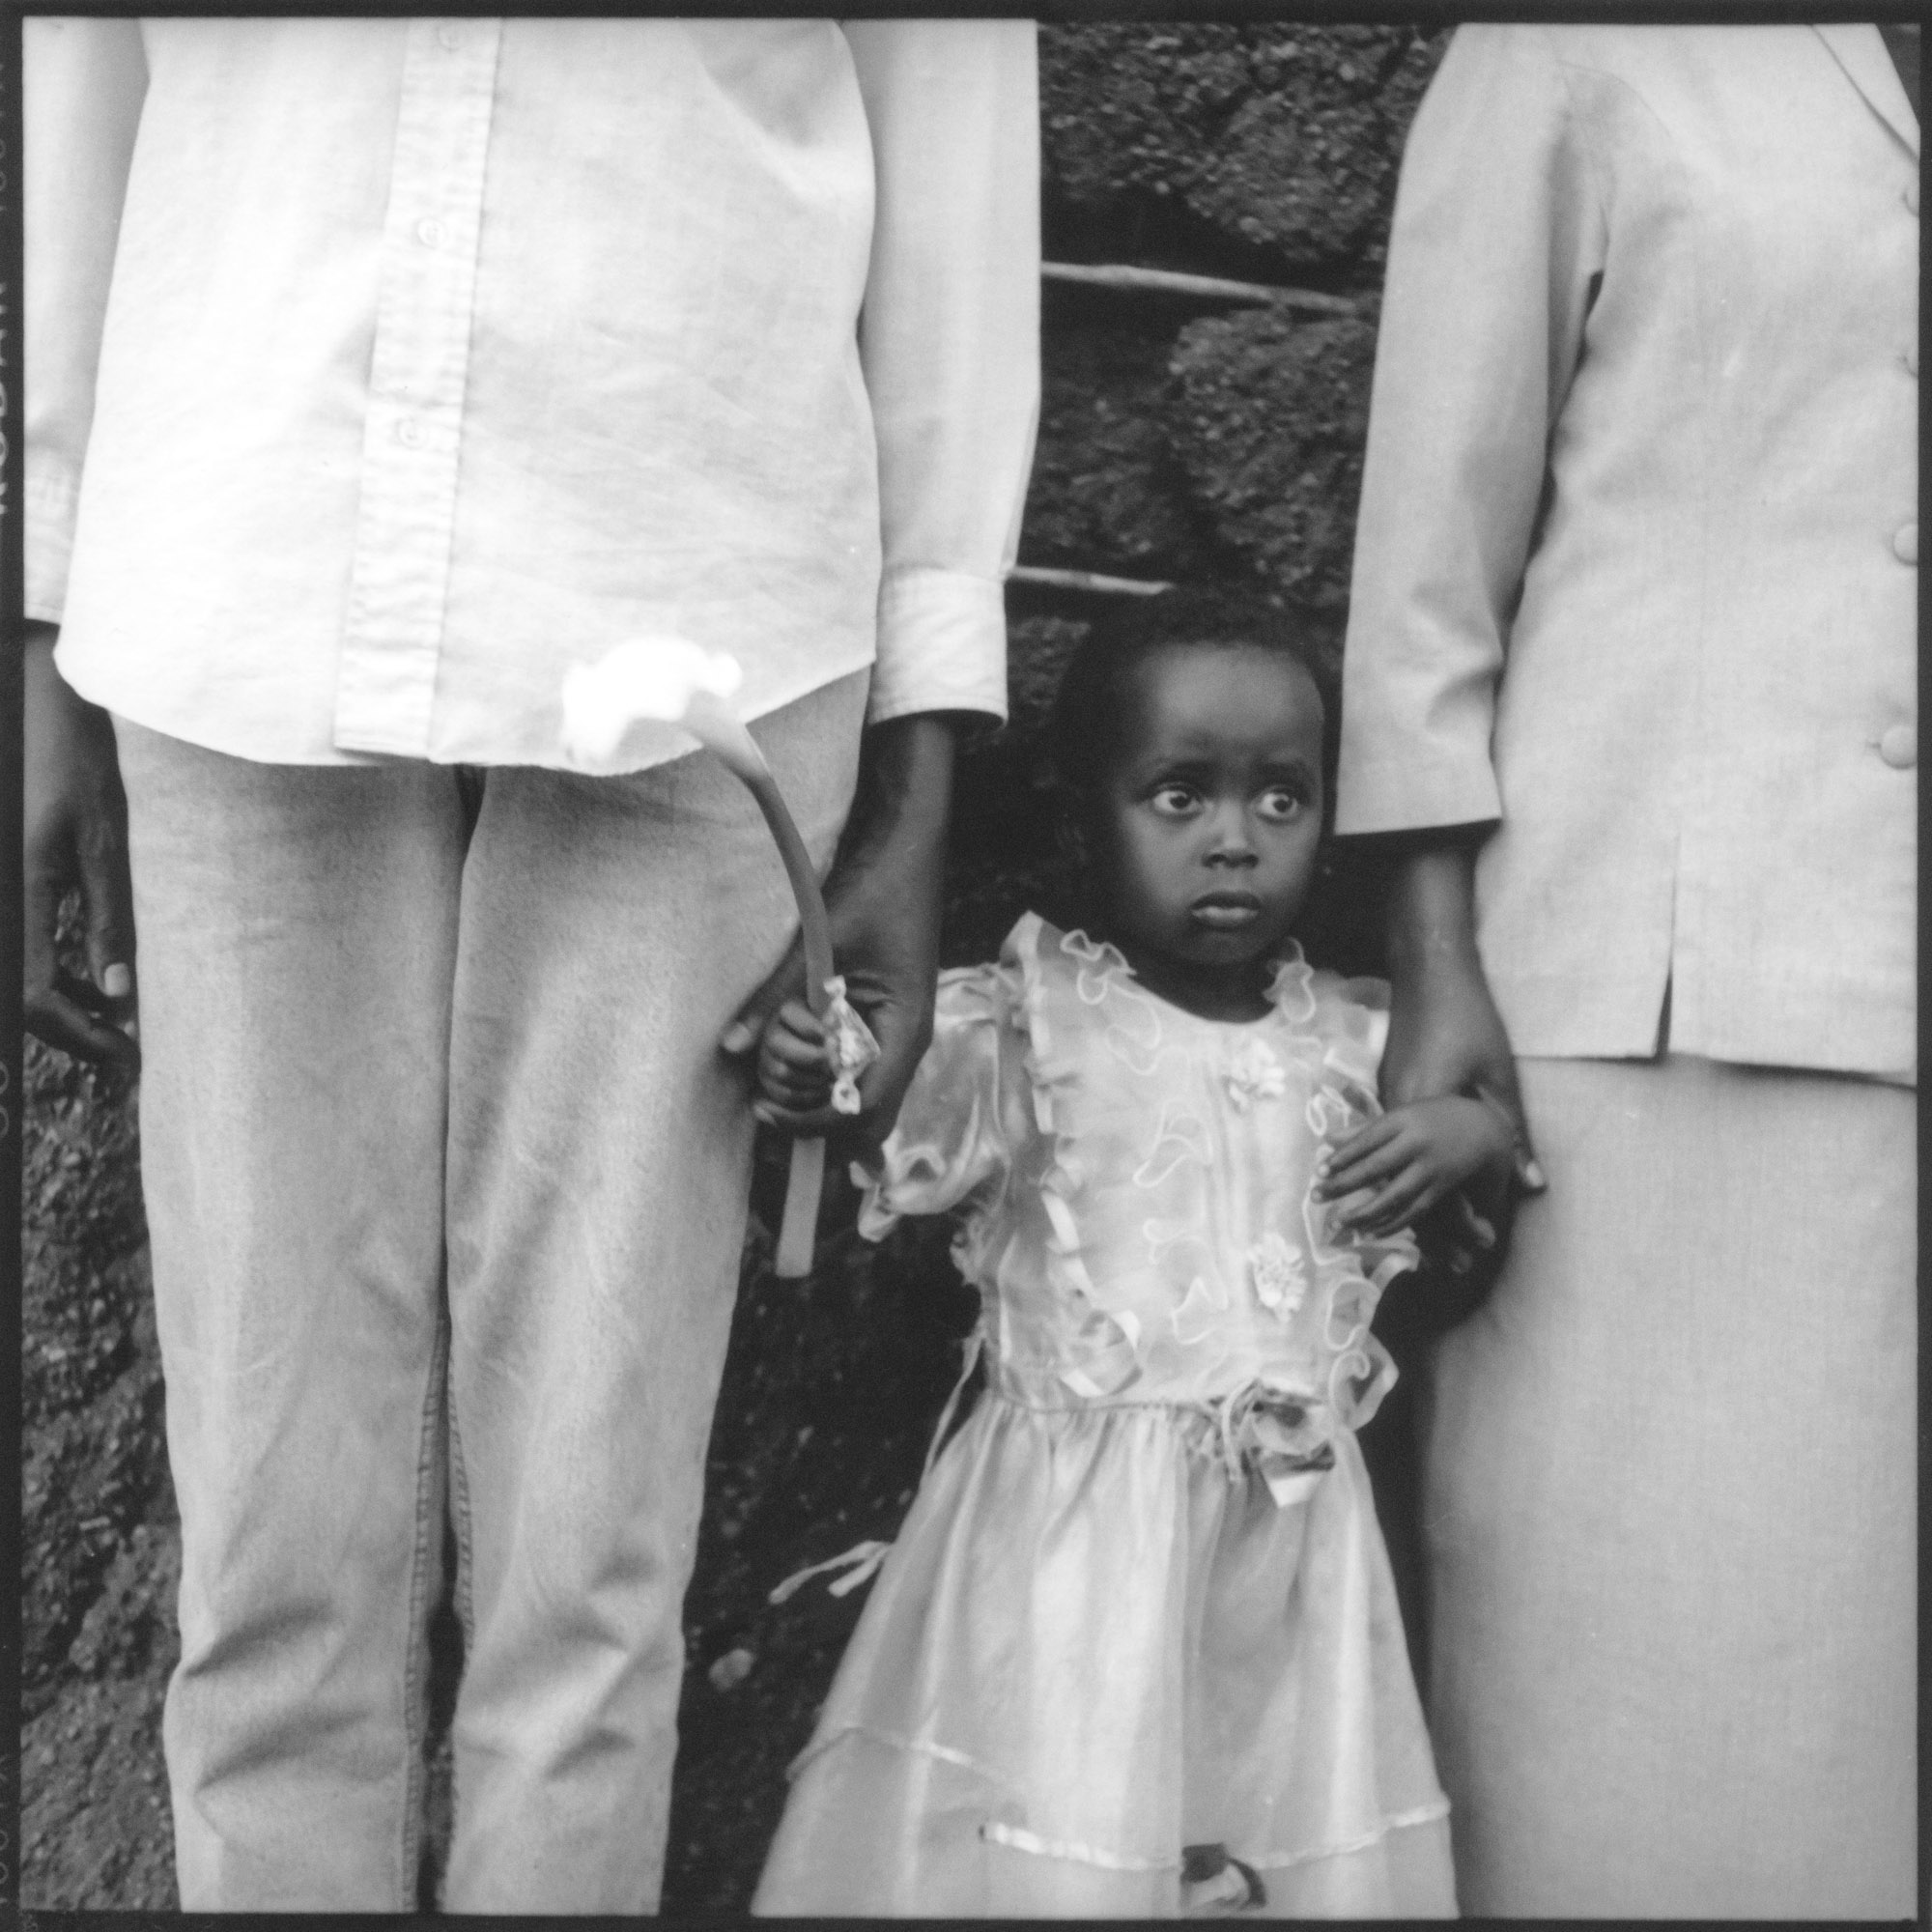 0502_9_8_bobette_and_her_parents.jpg